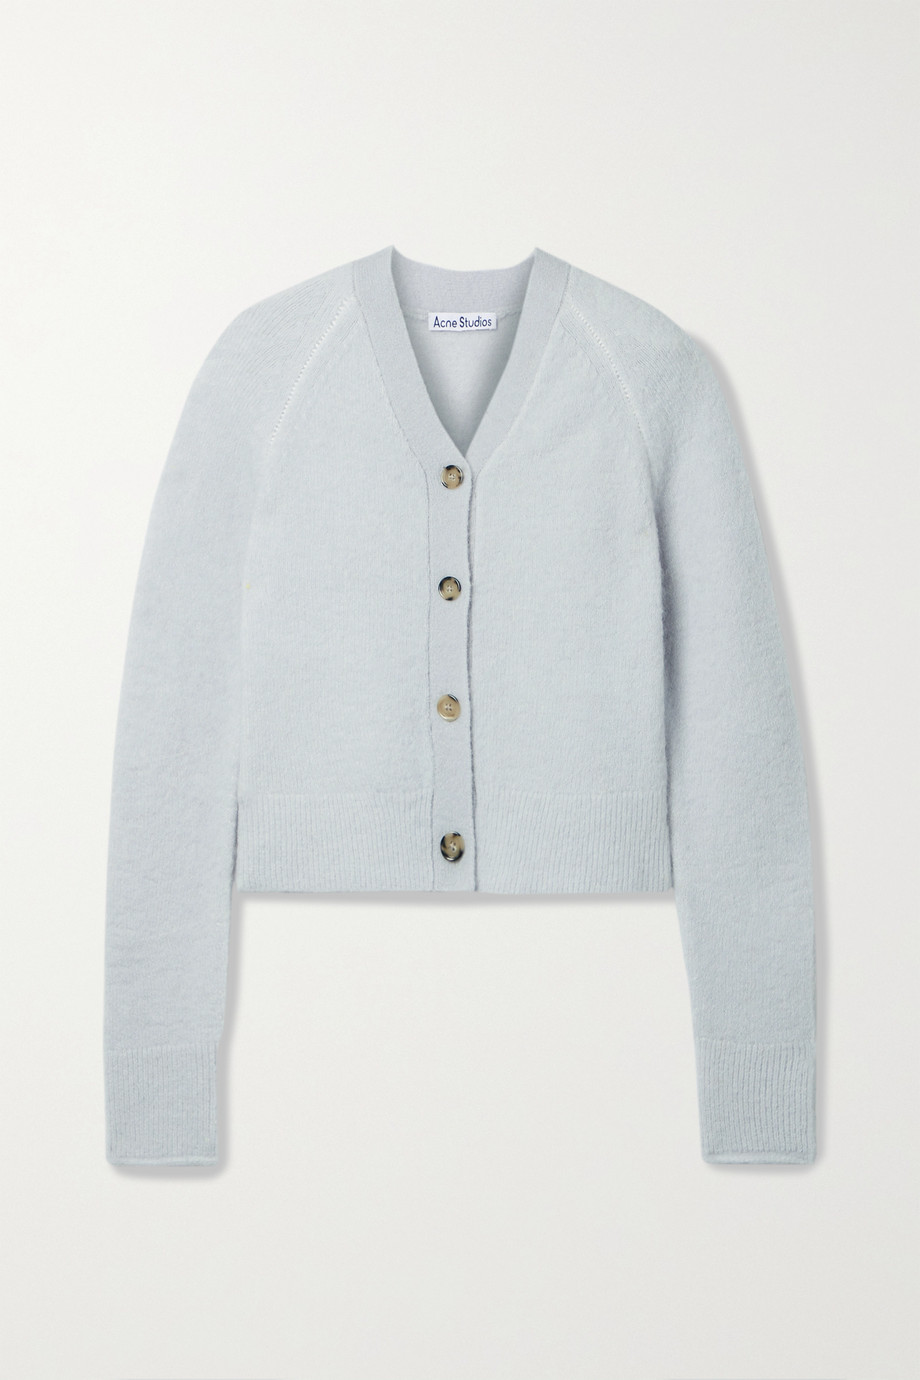 ACNE STUDIOS Stretch-knit cardigan